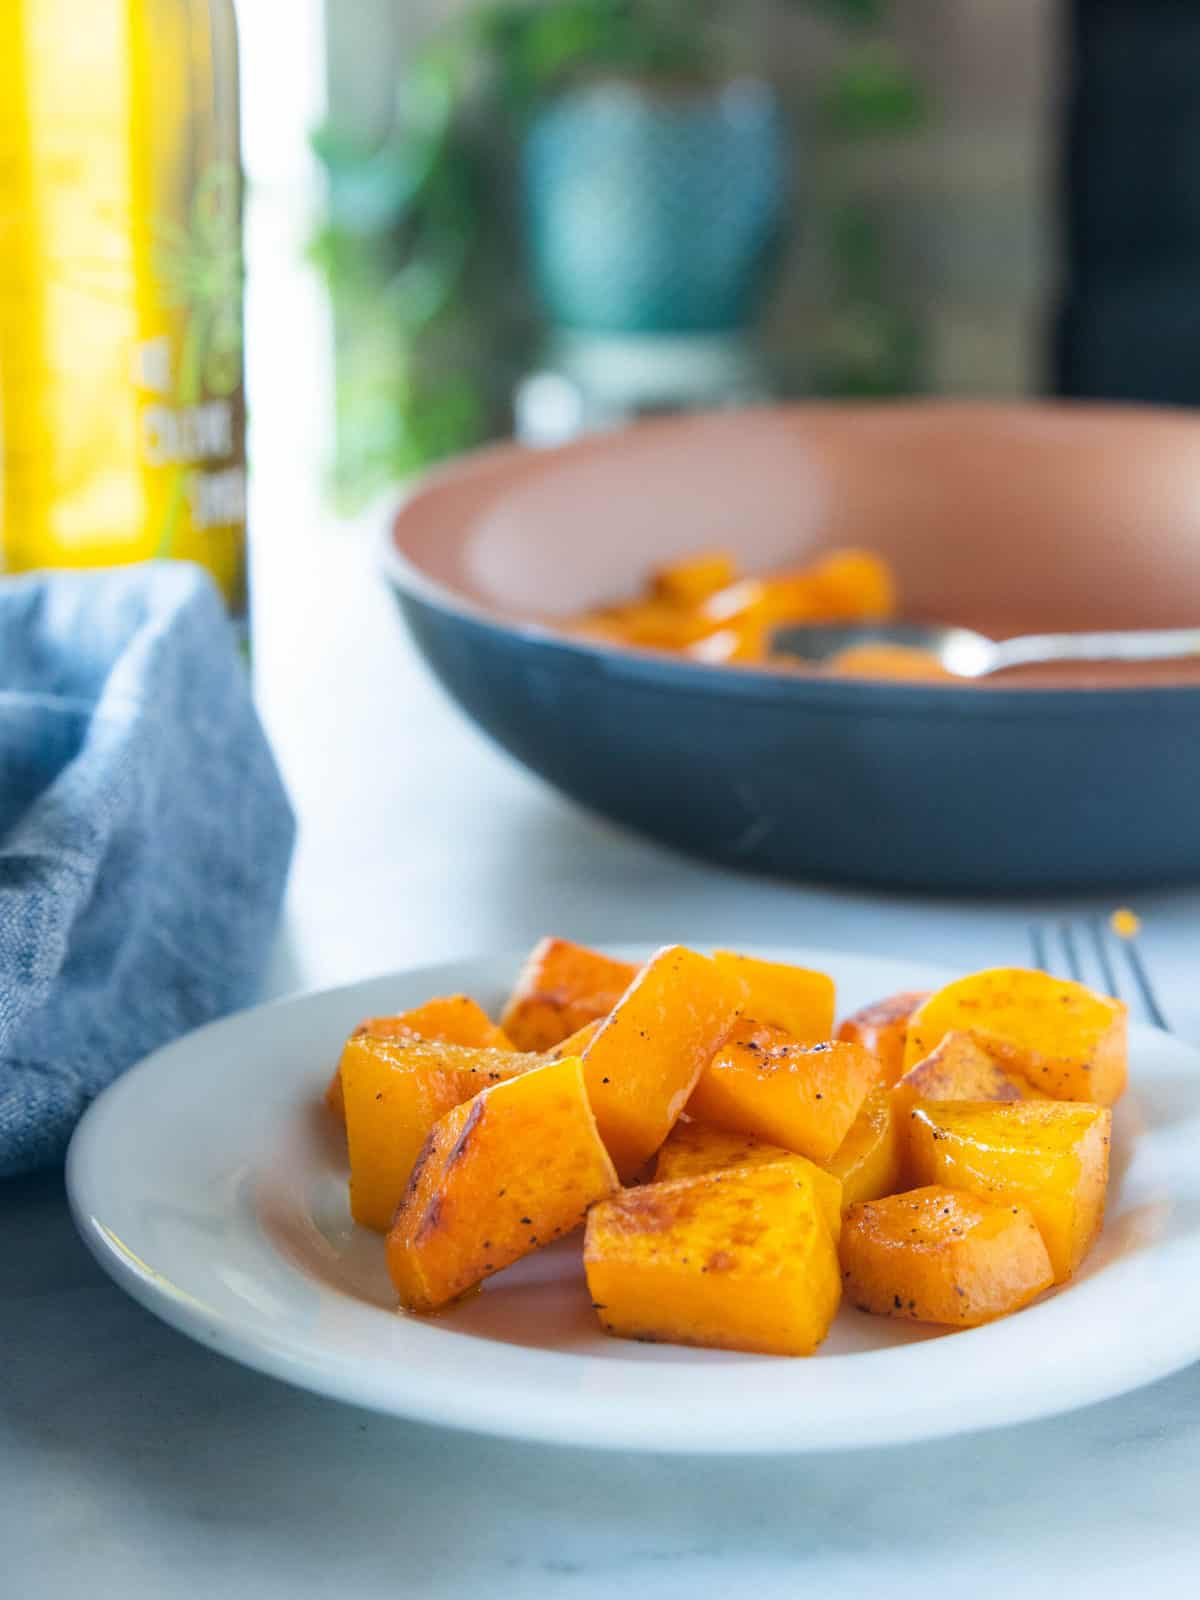 Sautéed butternut squash on a white plate with a fork next to the plate and a large serving bowl filled with sautéed squash behind the white plate.